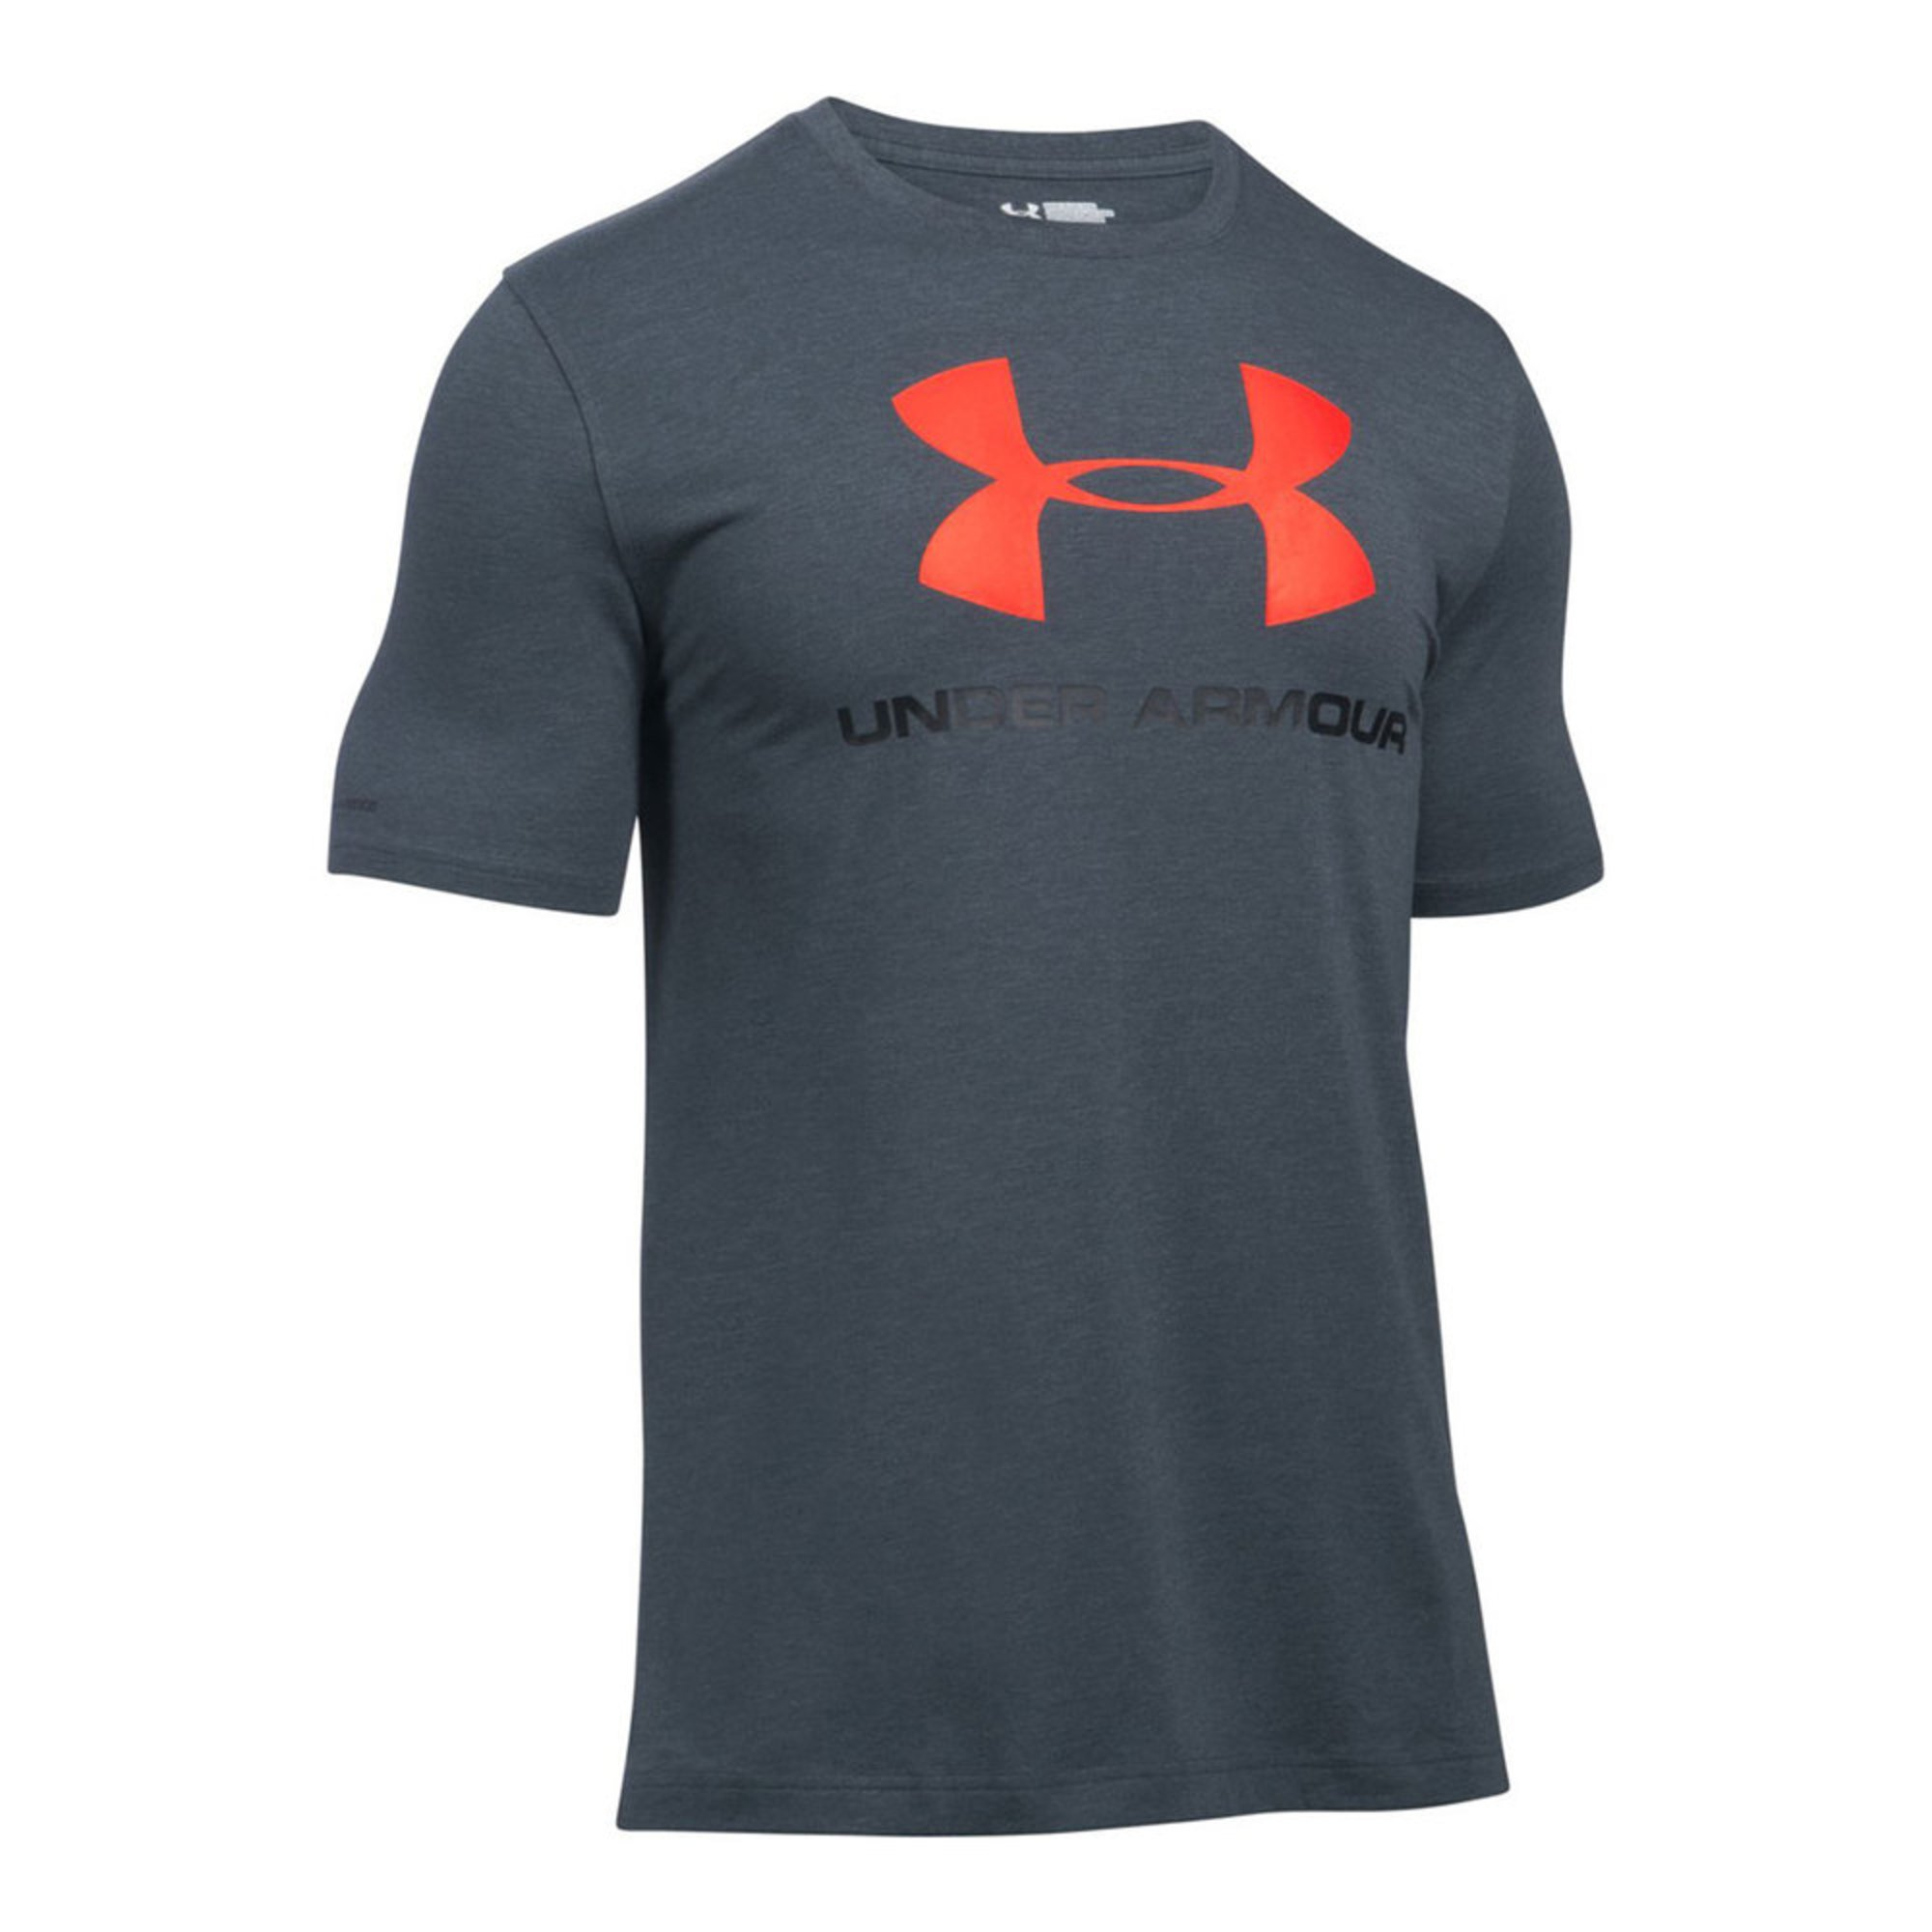 Under armour men 39 s sportstyle logo tee stealth grey men for Under armour men s shirts clearance